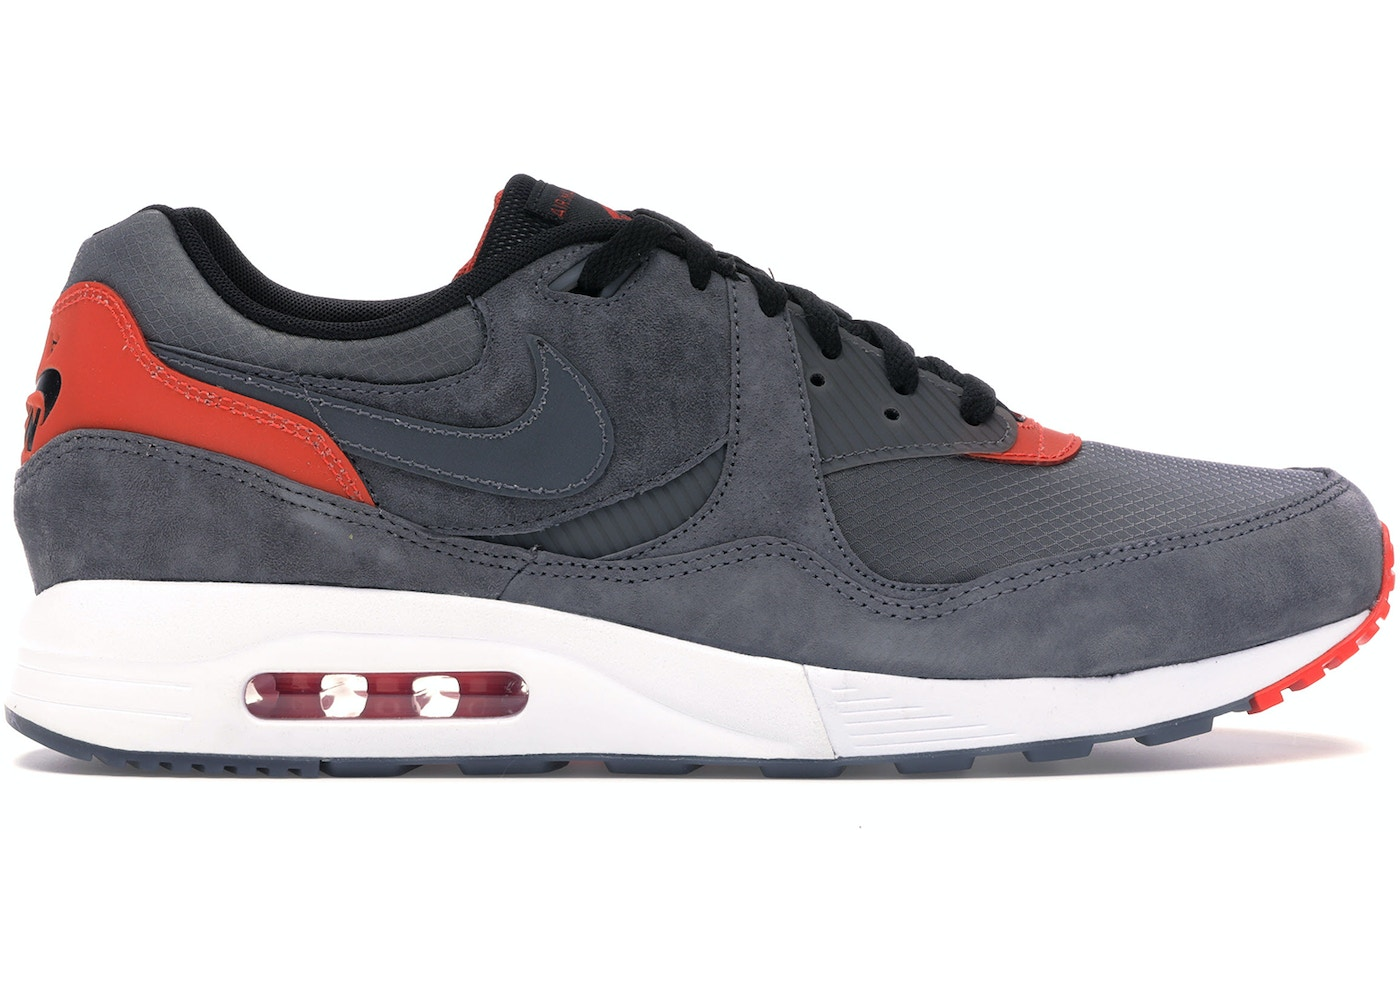 huge selection of 15b15 186bf Air Max Light size  Air Max Day (2019) - CD1510 001